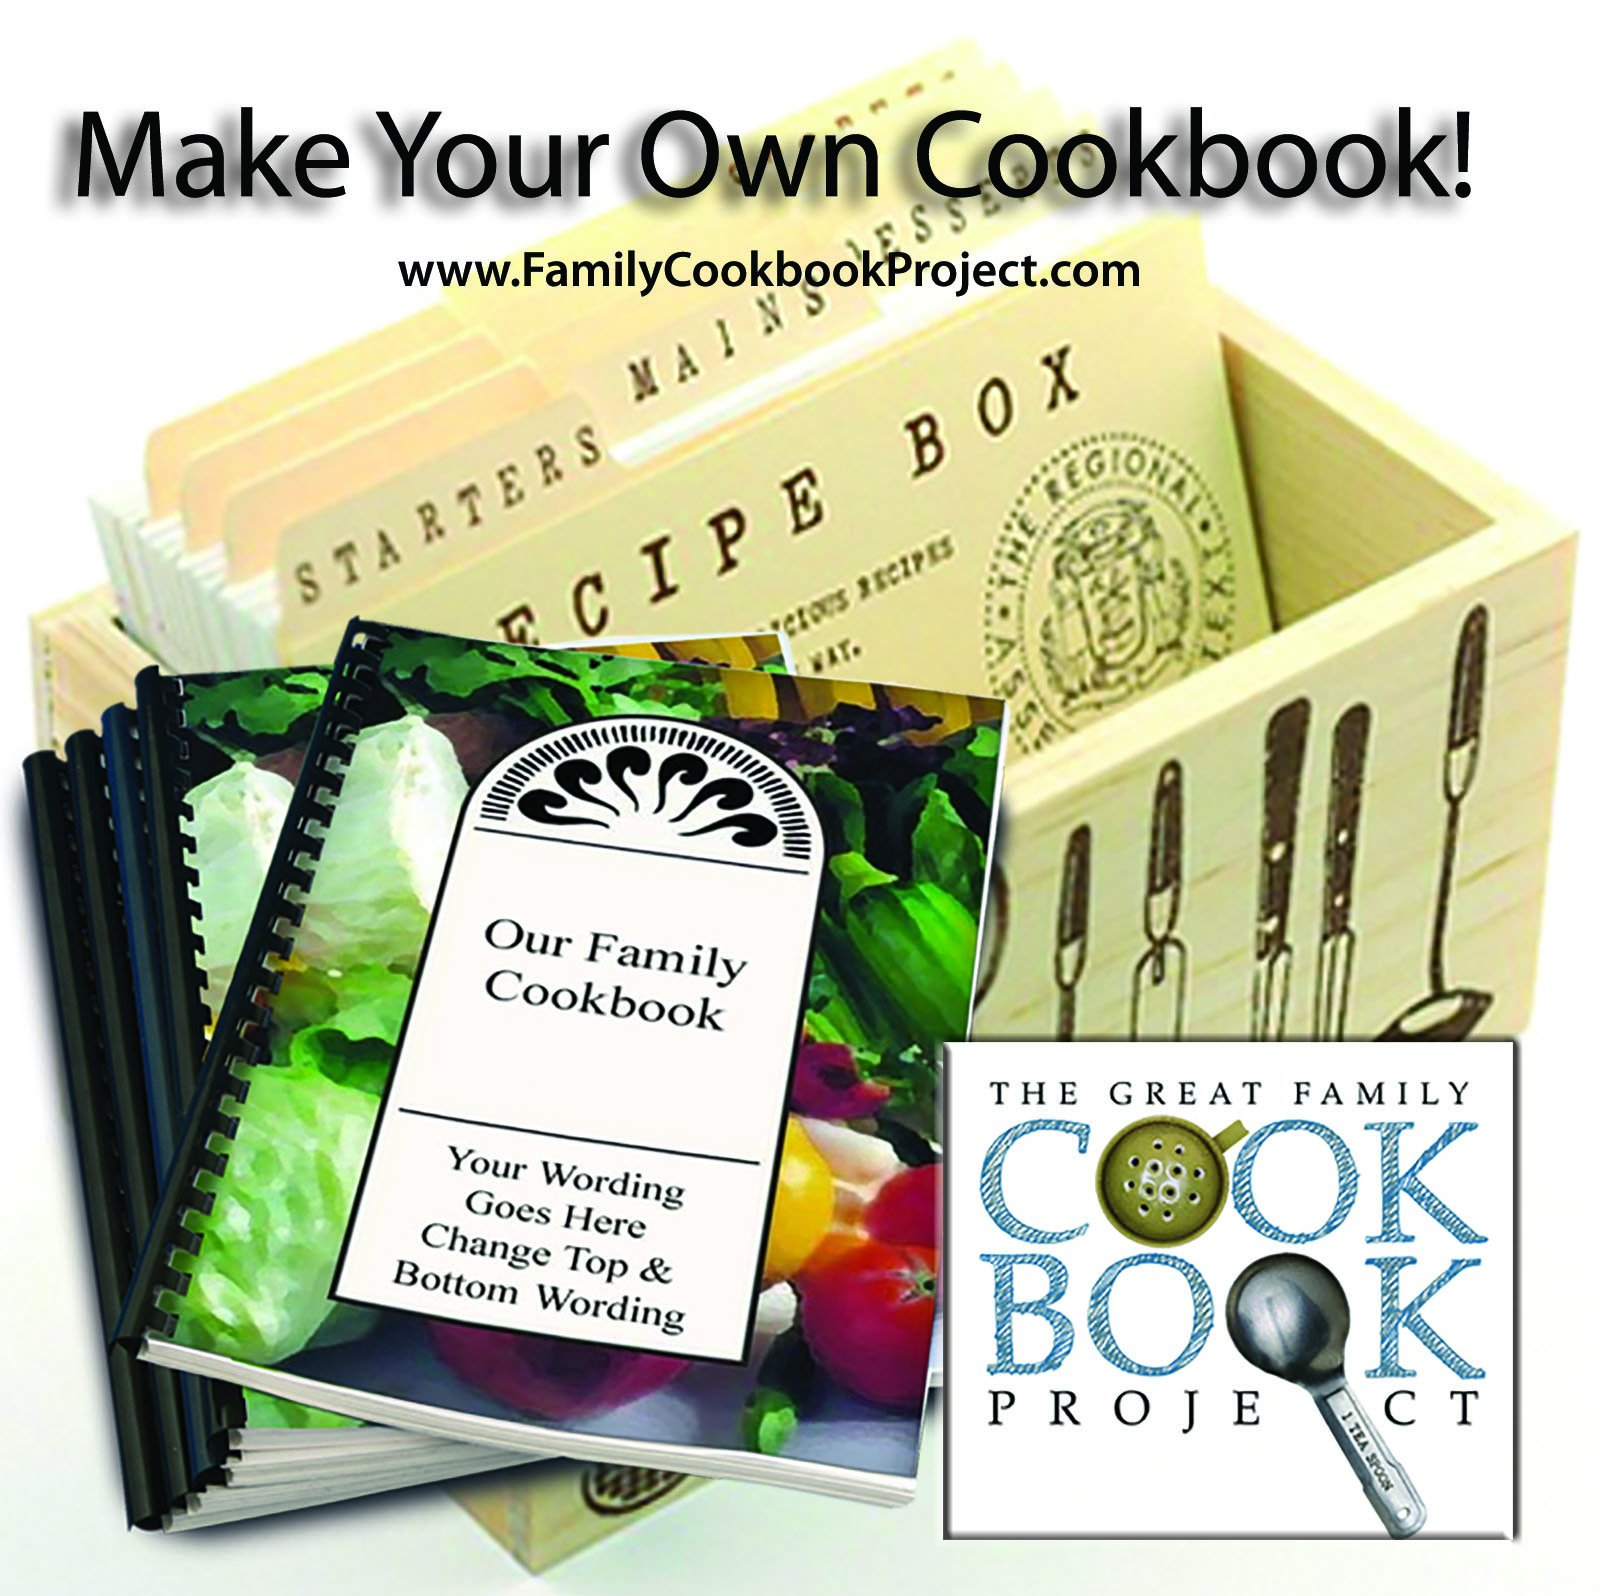 Family Cookbook Creation Kit With 5 Professionally Printed Custom Cookbooks - Quick, Convenient and Easy to Use - USA-Based Tech Support by Family Cookbook Project